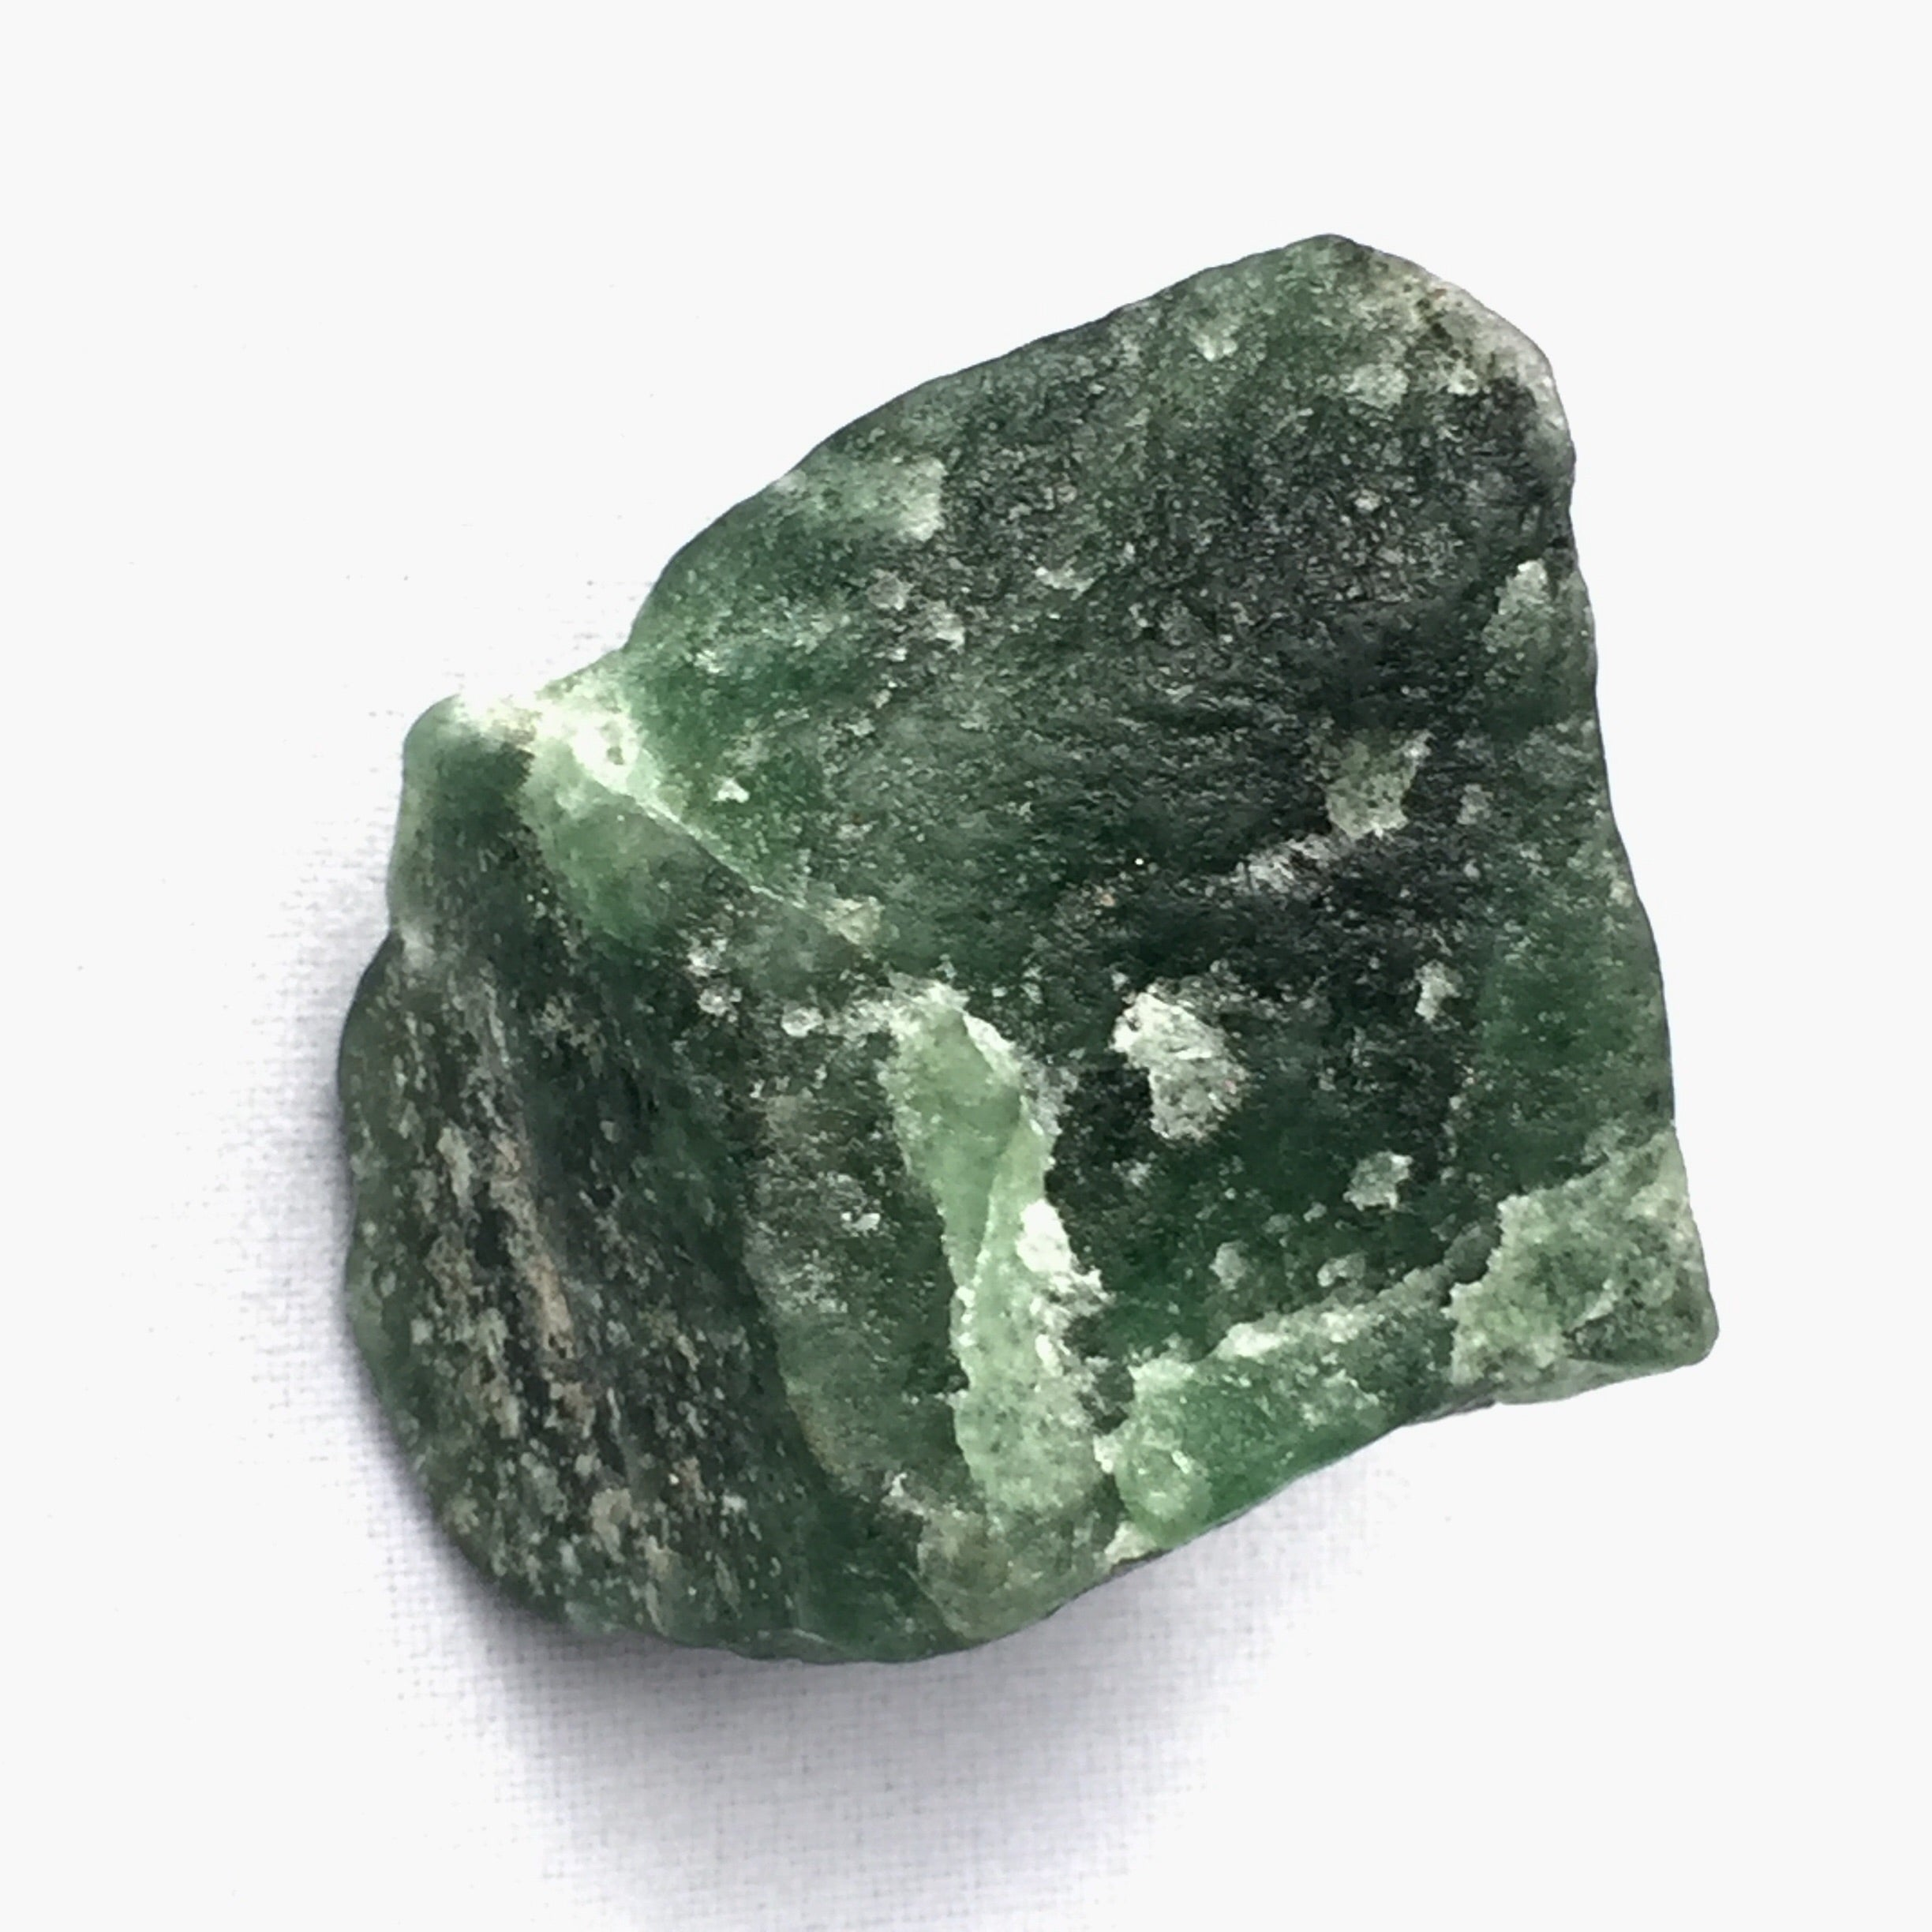 Emerald Quartz-emerald quartz-The Lemurian Rose